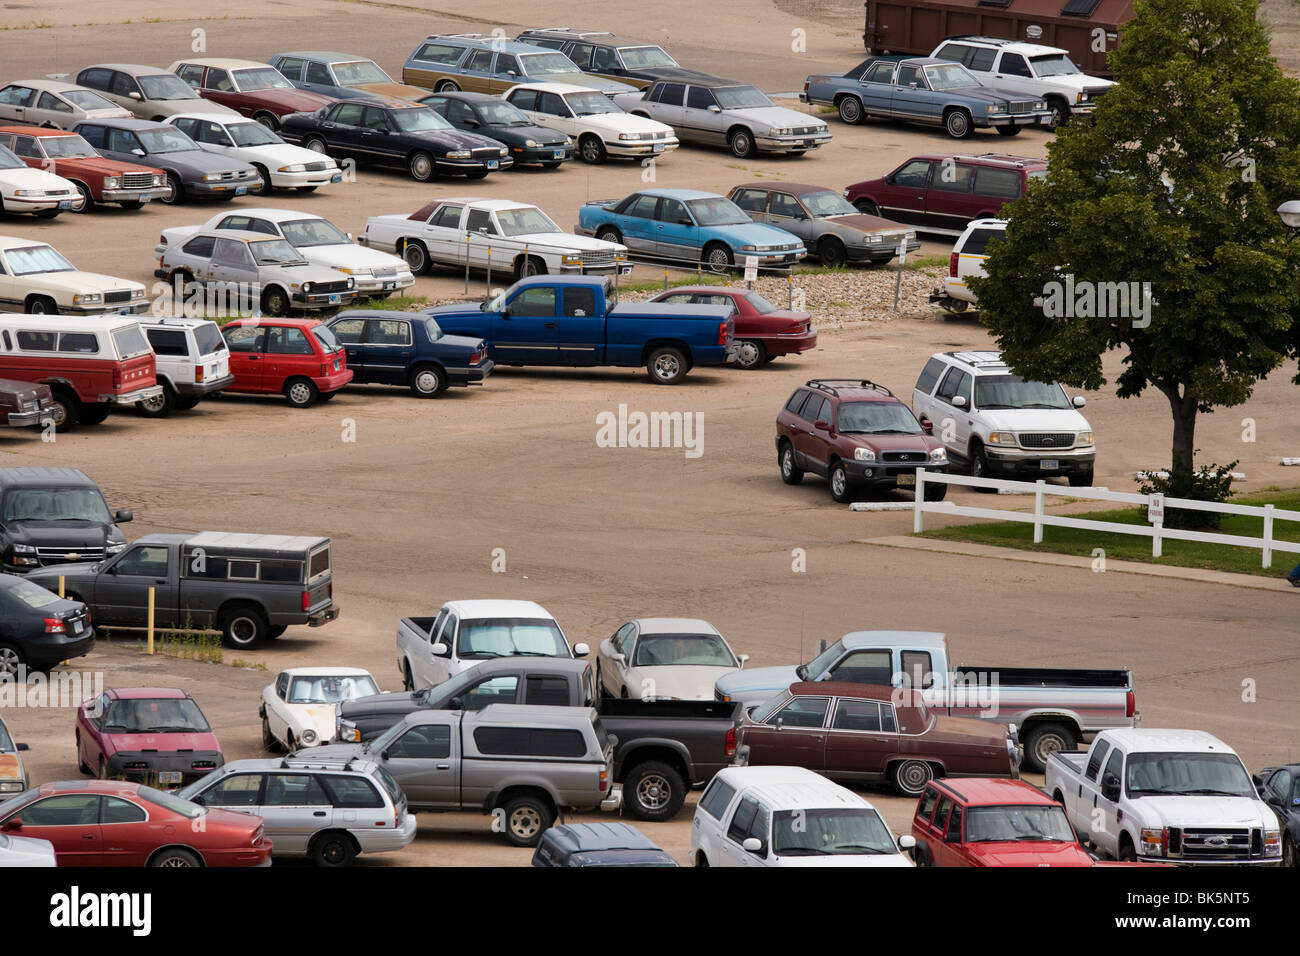 Parking lot outside of a US factory. Mostly older cars, not very well maintained. Nebraska, American Mid West. - Stock Image